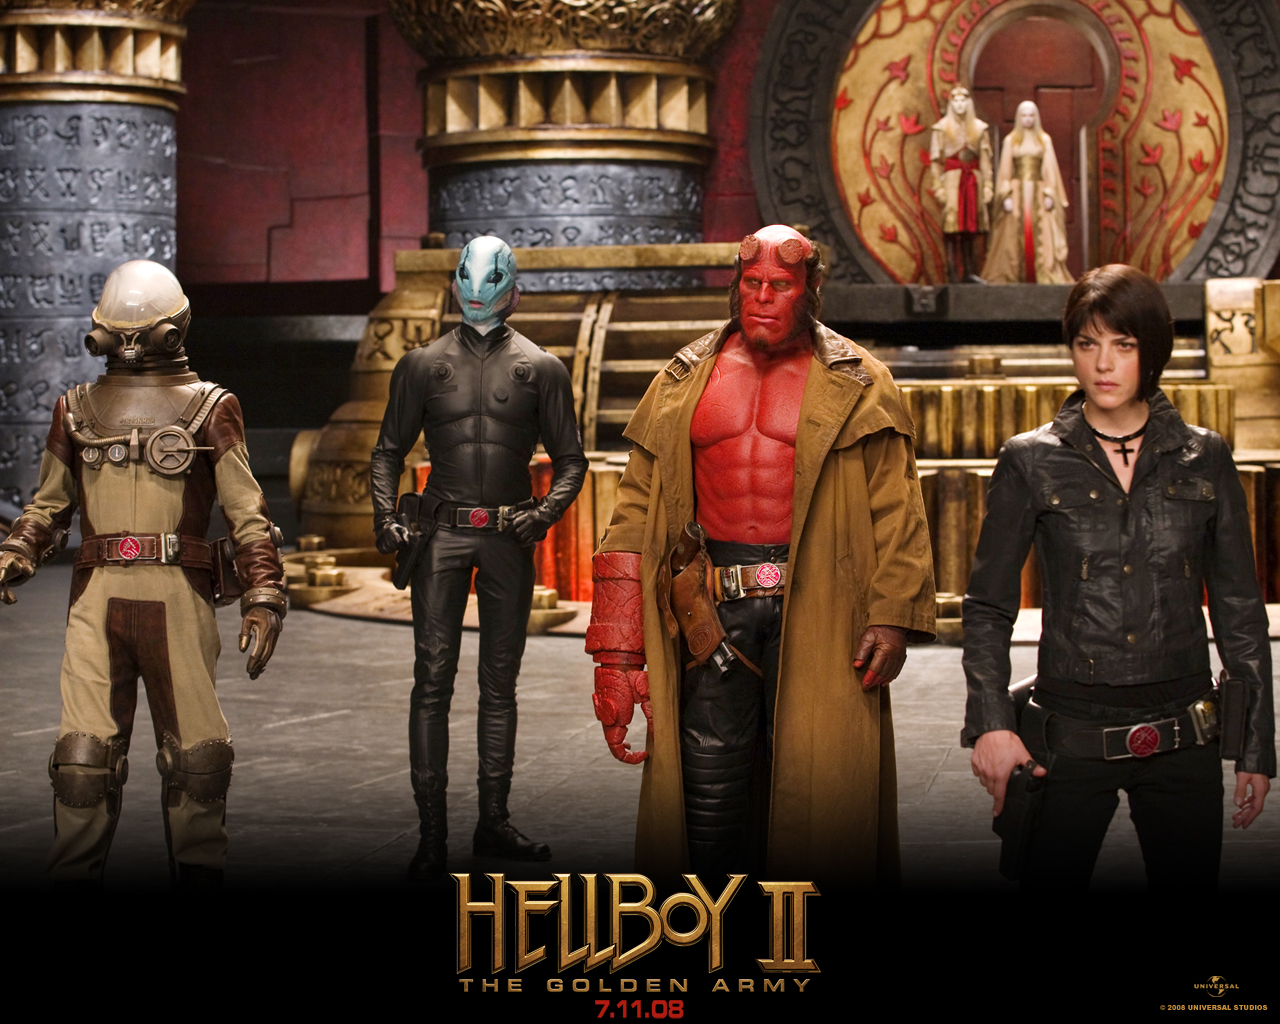 Free Download High quality Hellboy 2 The Golden Army Wallpaper Num.